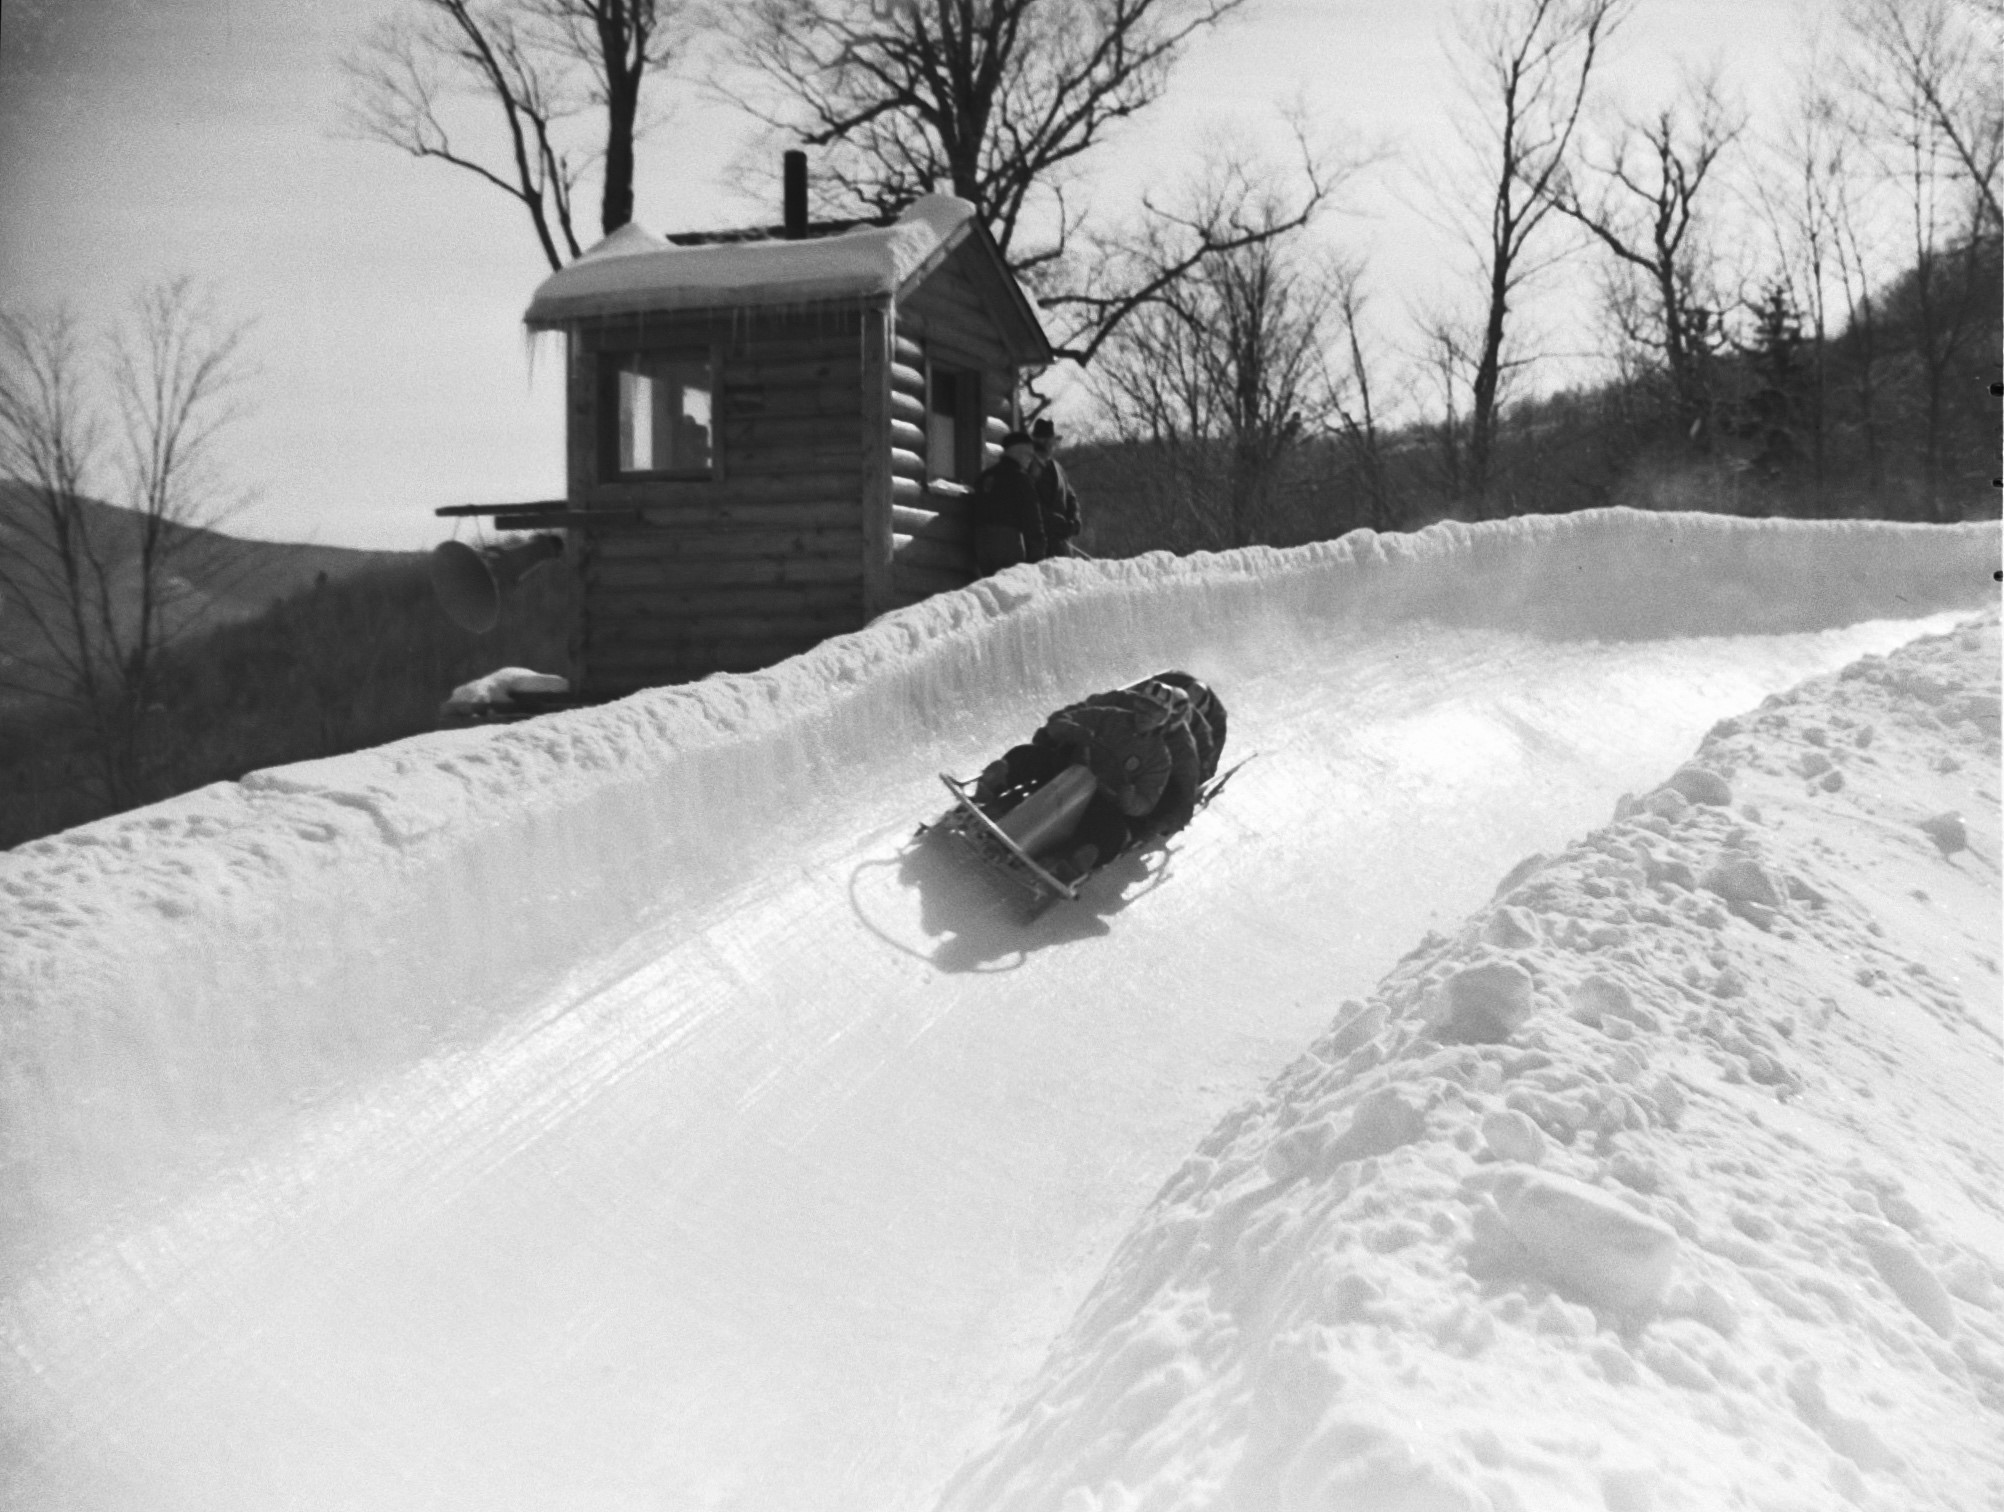 Early 4-man Bobsled